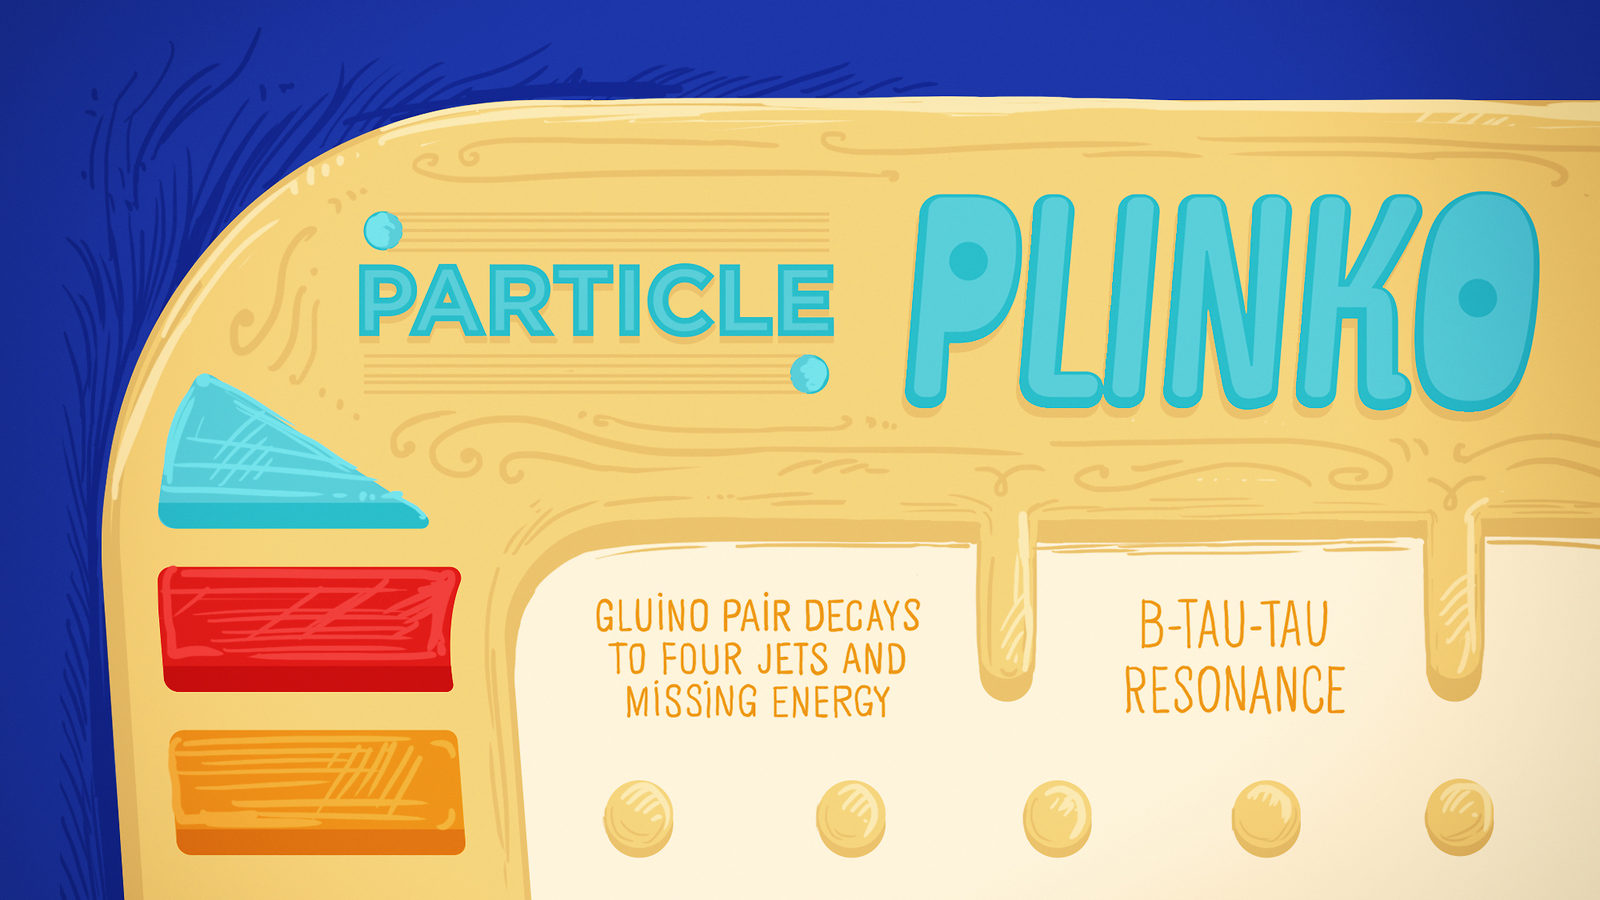 Feature: Particle Plinko